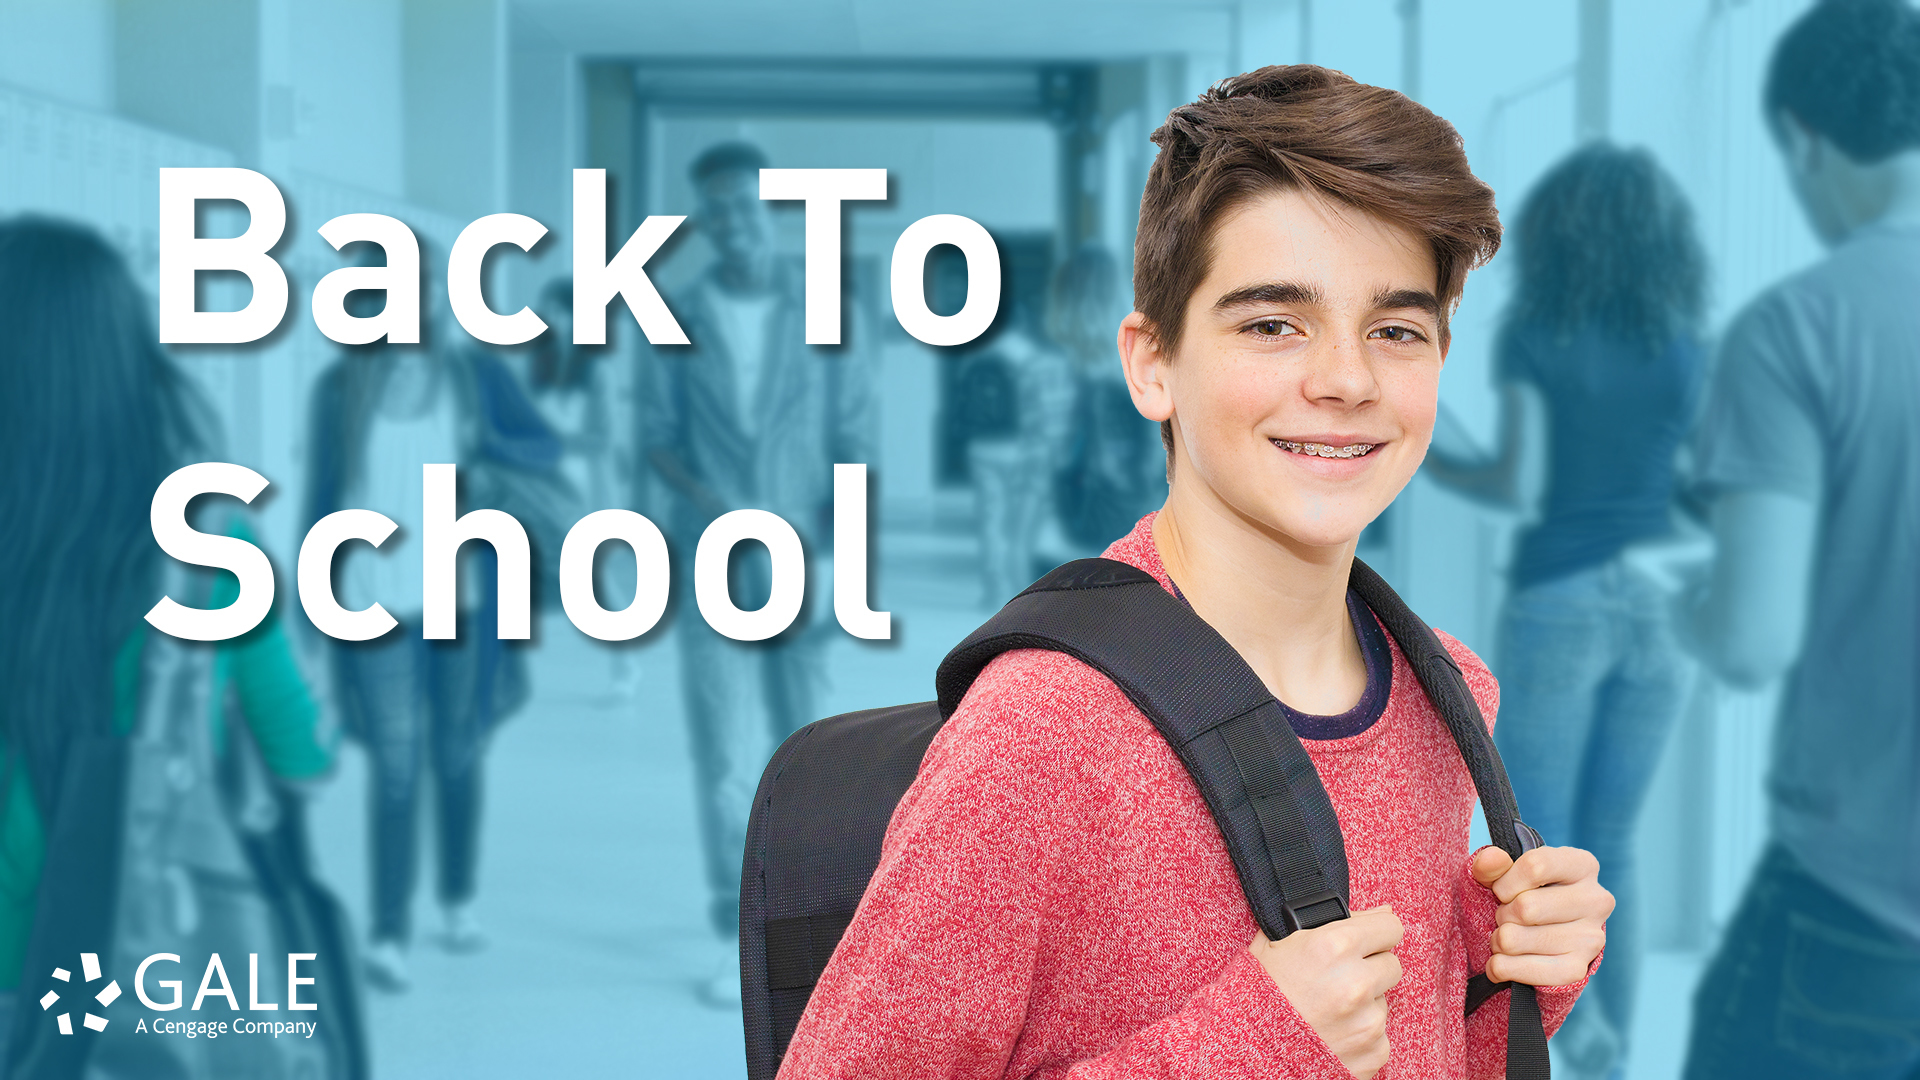 Back To School with the DODEA Thumbnail